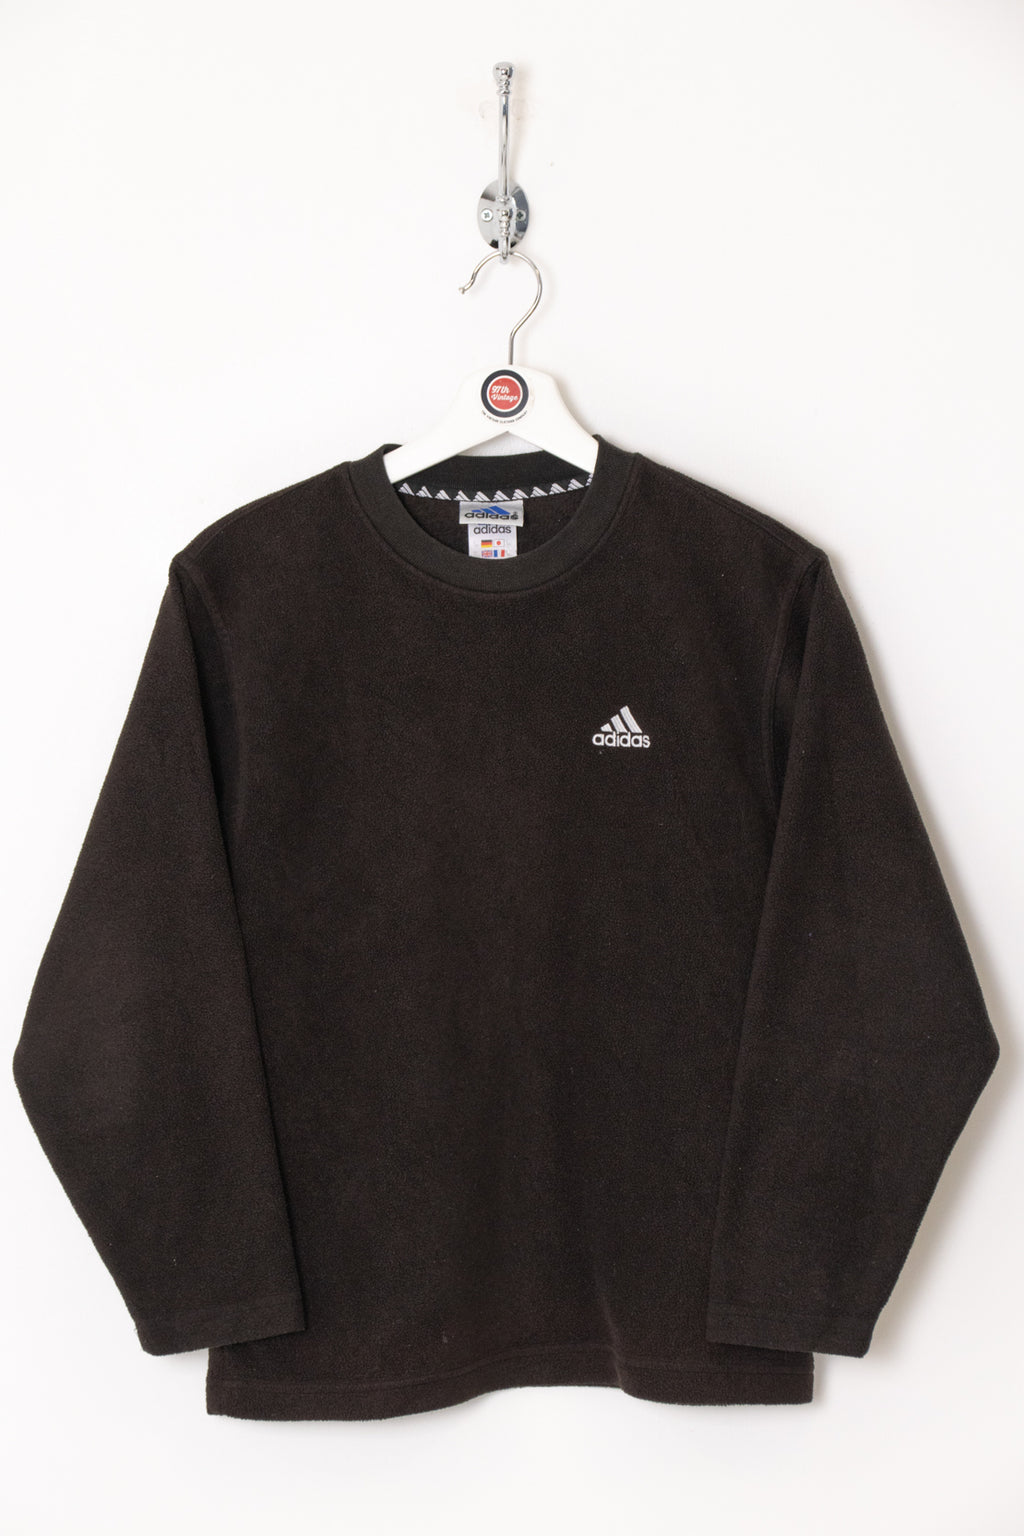 Women's Adidas Fleece (S)